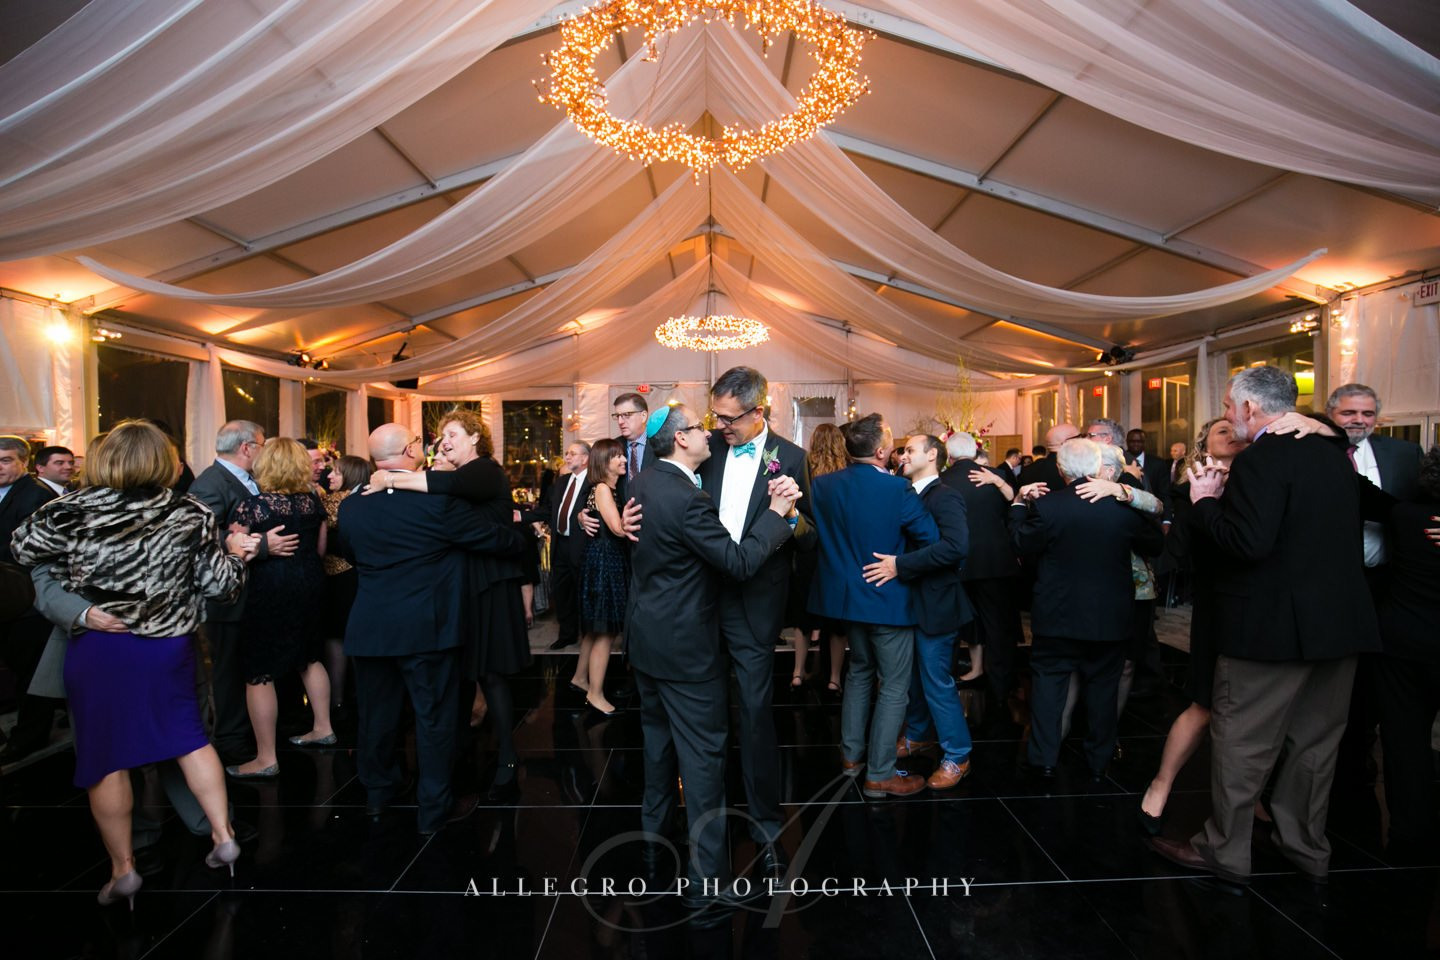 dancing - photo by Allegro Photography